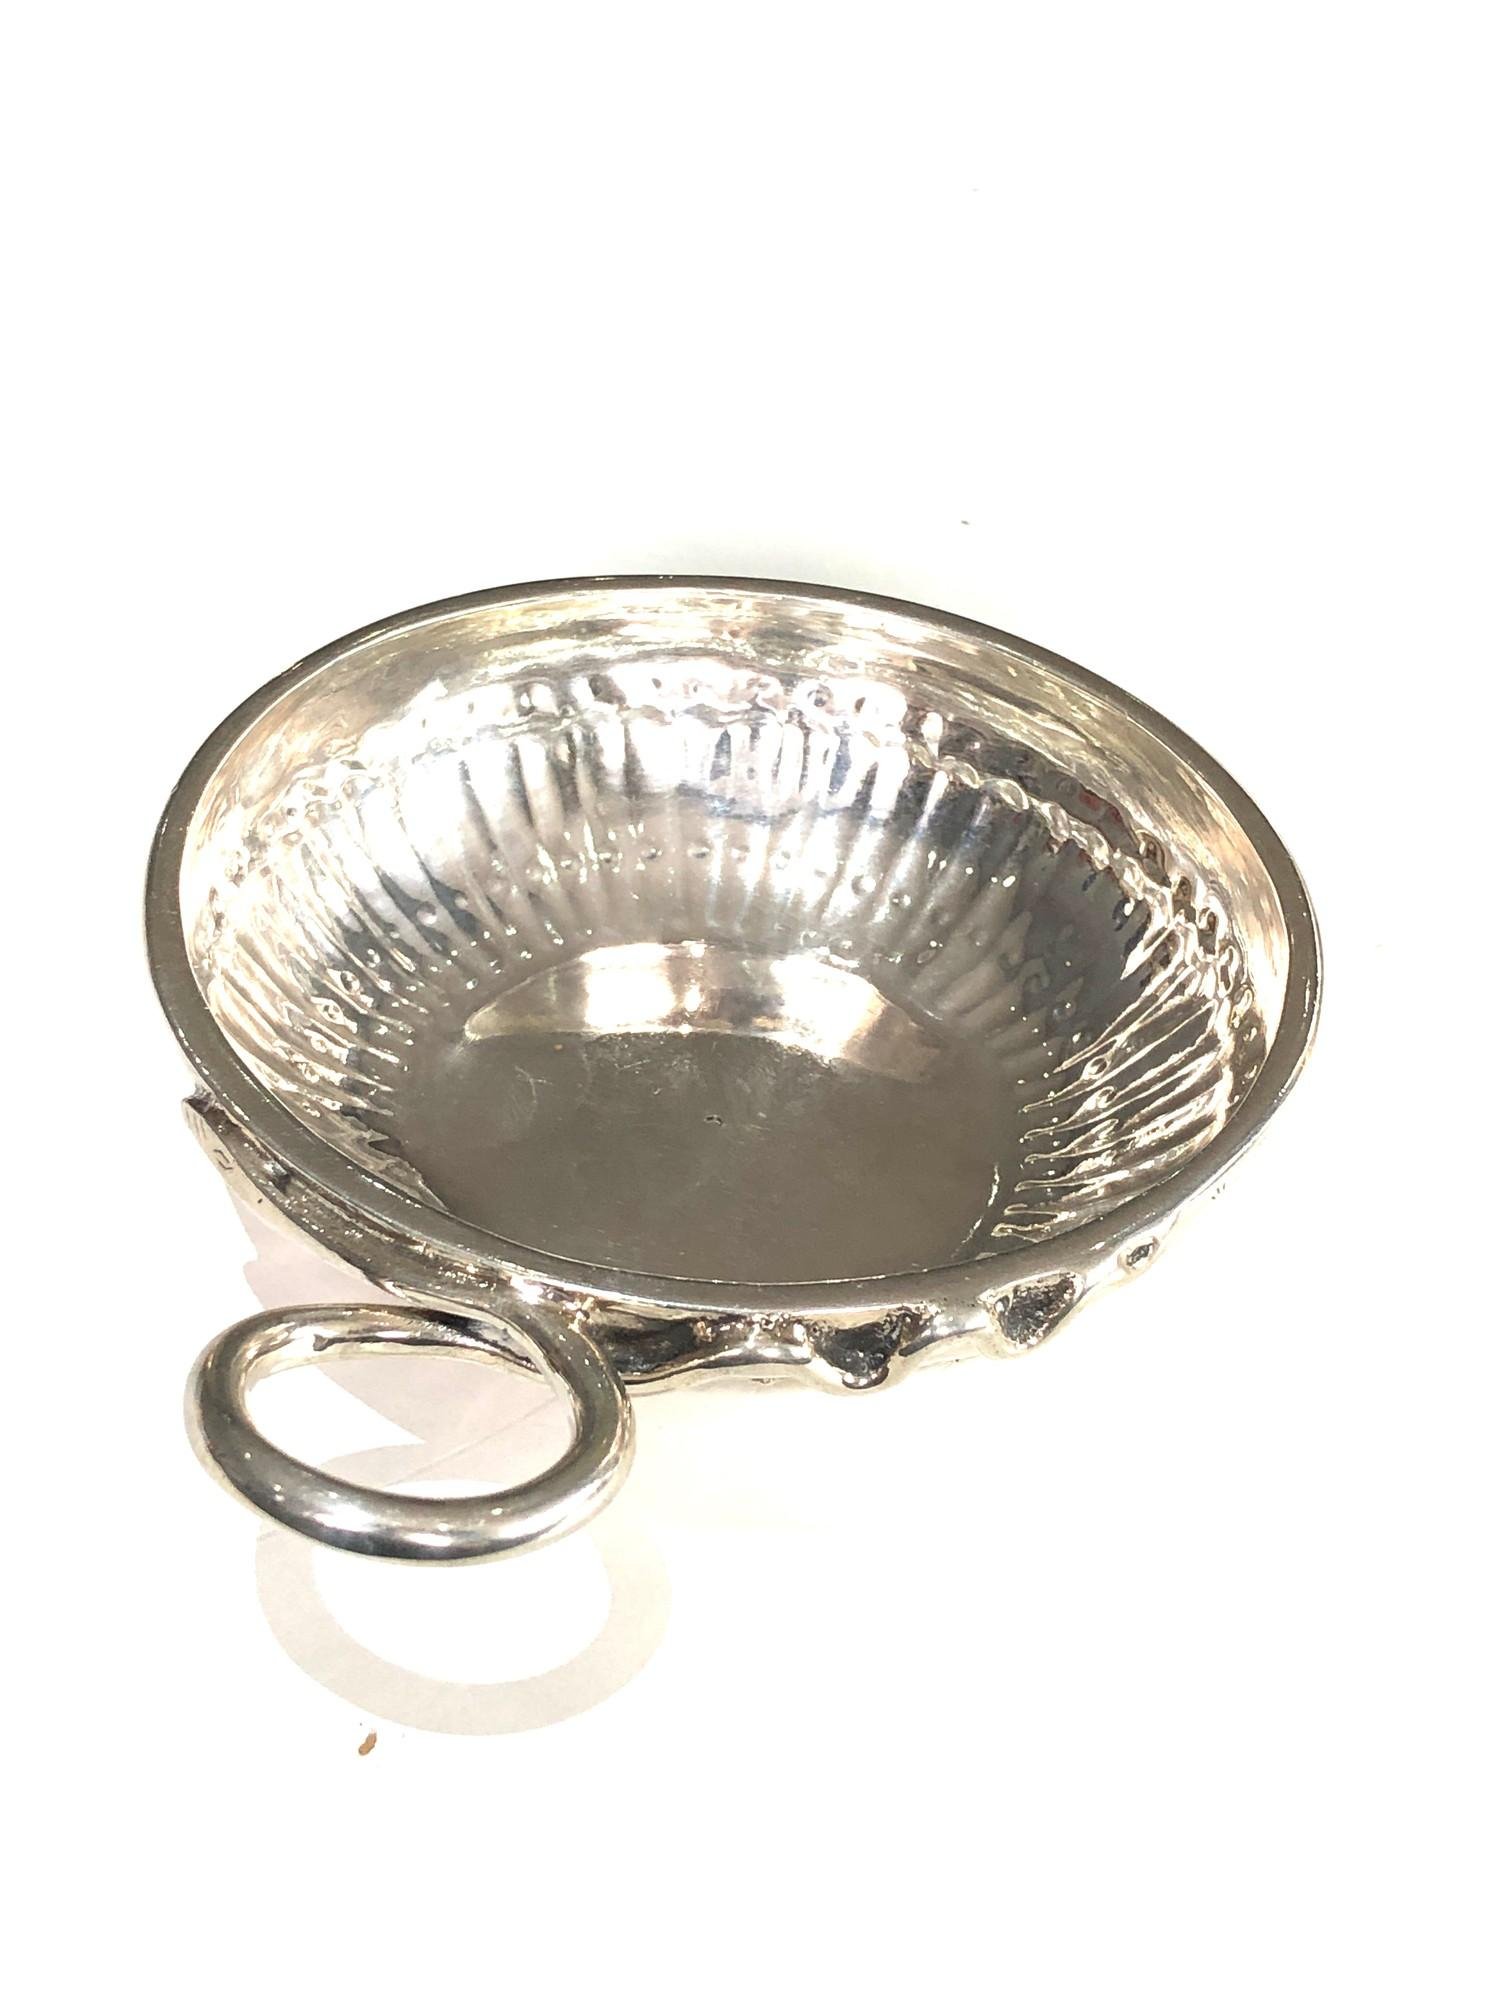 Fine 18th century French silver wine taster measures approx 12cm by bowl 9.5cm dia full hallmarks to - Image 2 of 7